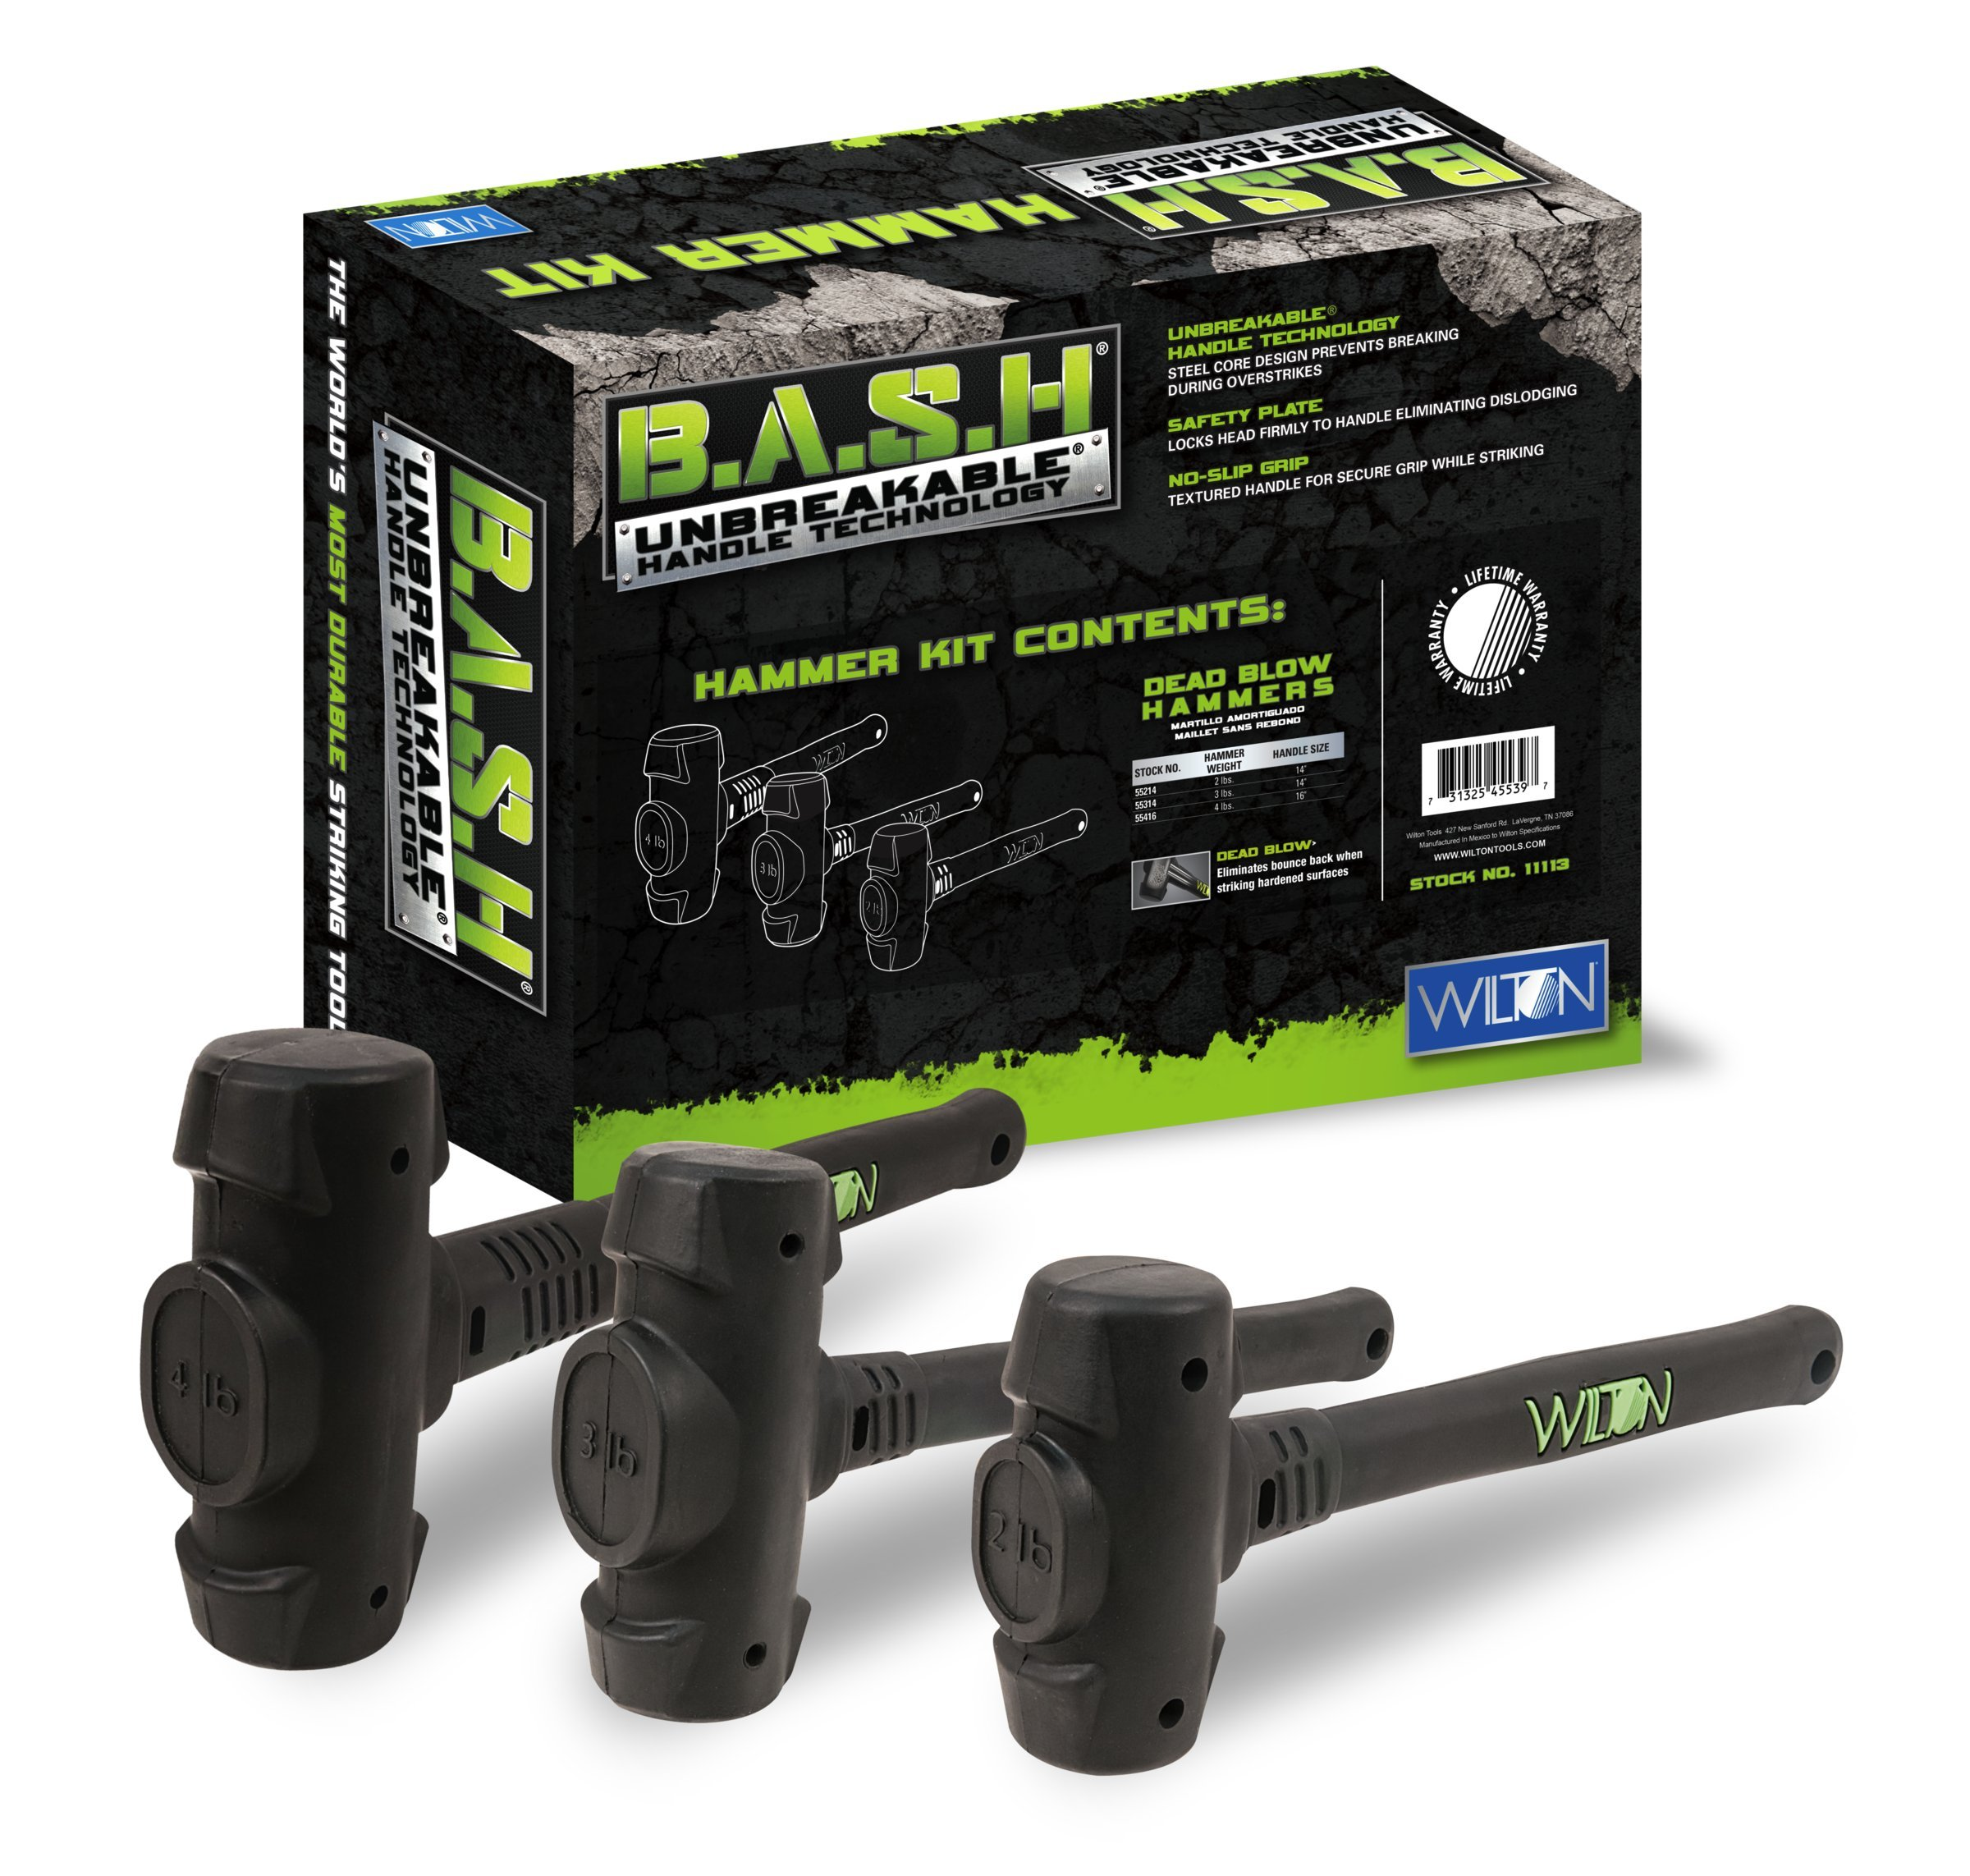 Wilton 11113 B.A.S.H Dead Blow Hammer Kit by Wilton